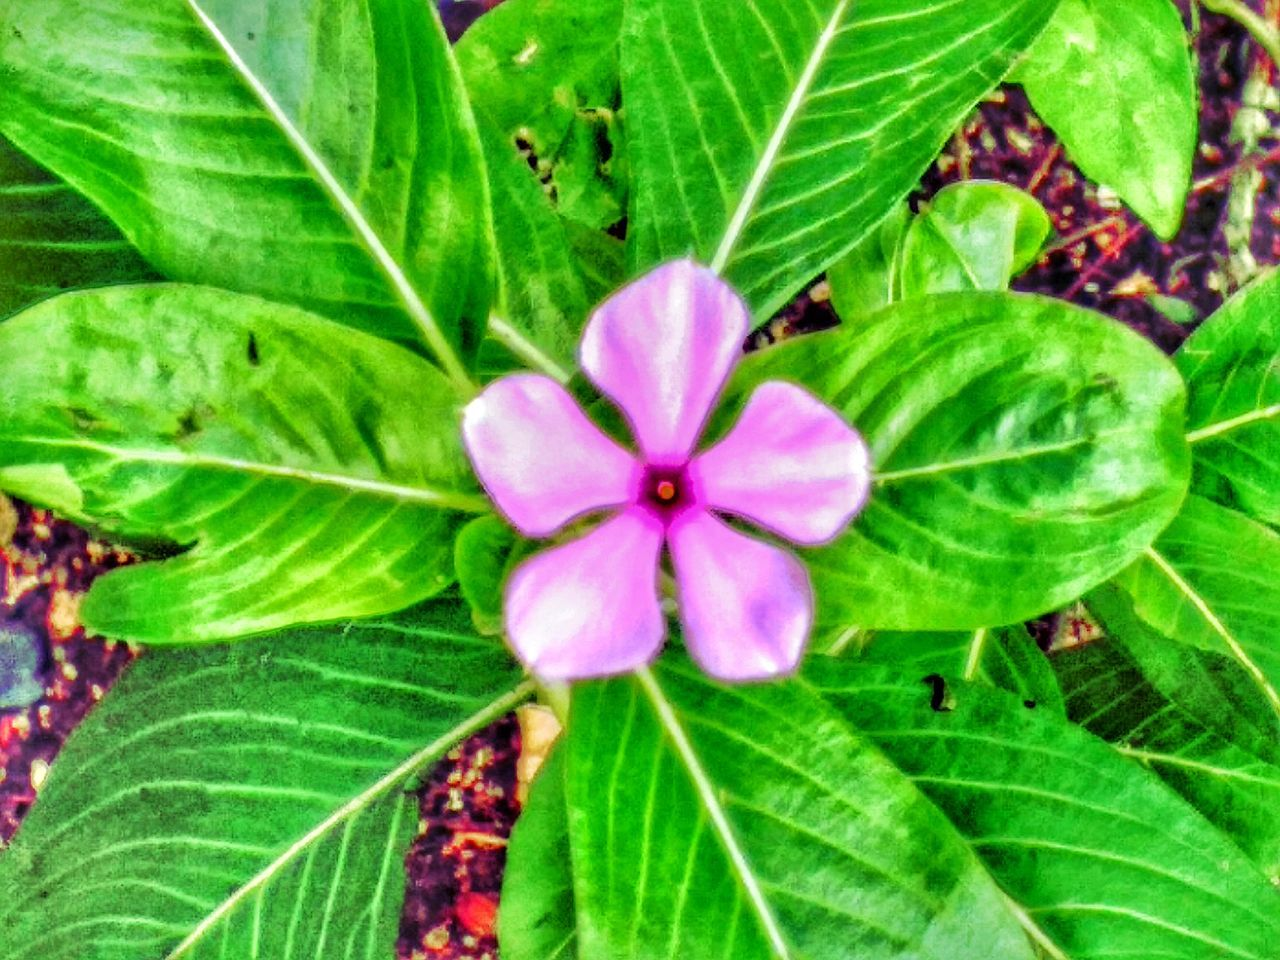 leaf, growth, flower, green color, fragility, nature, beauty in nature, freshness, day, flower head, petal, plant, outdoors, no people, close-up, periwinkle, blooming